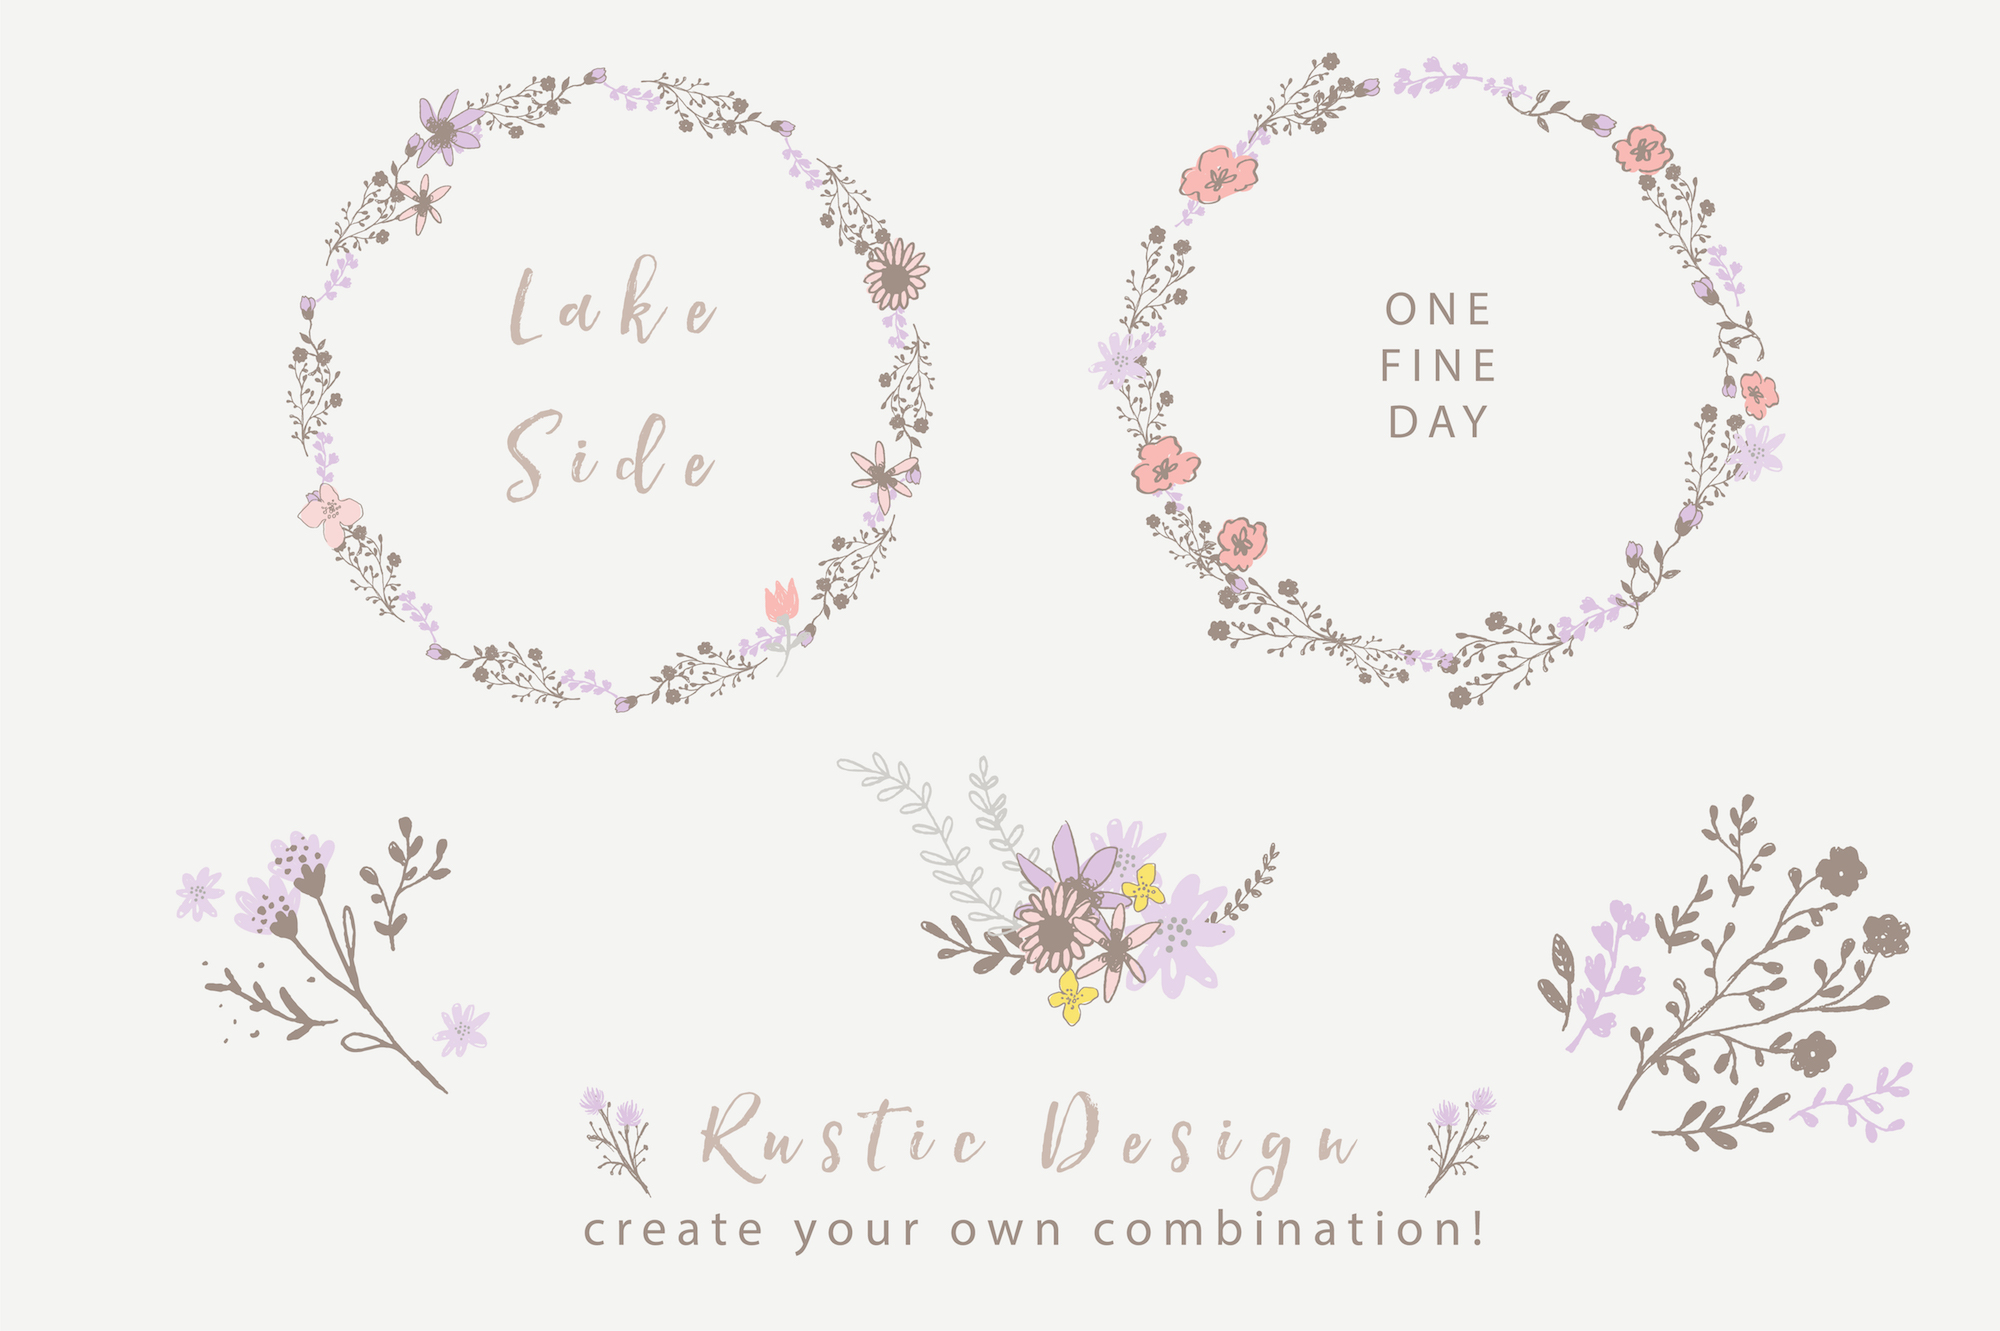 One Fine Day - Rustic Floral Design example image 2